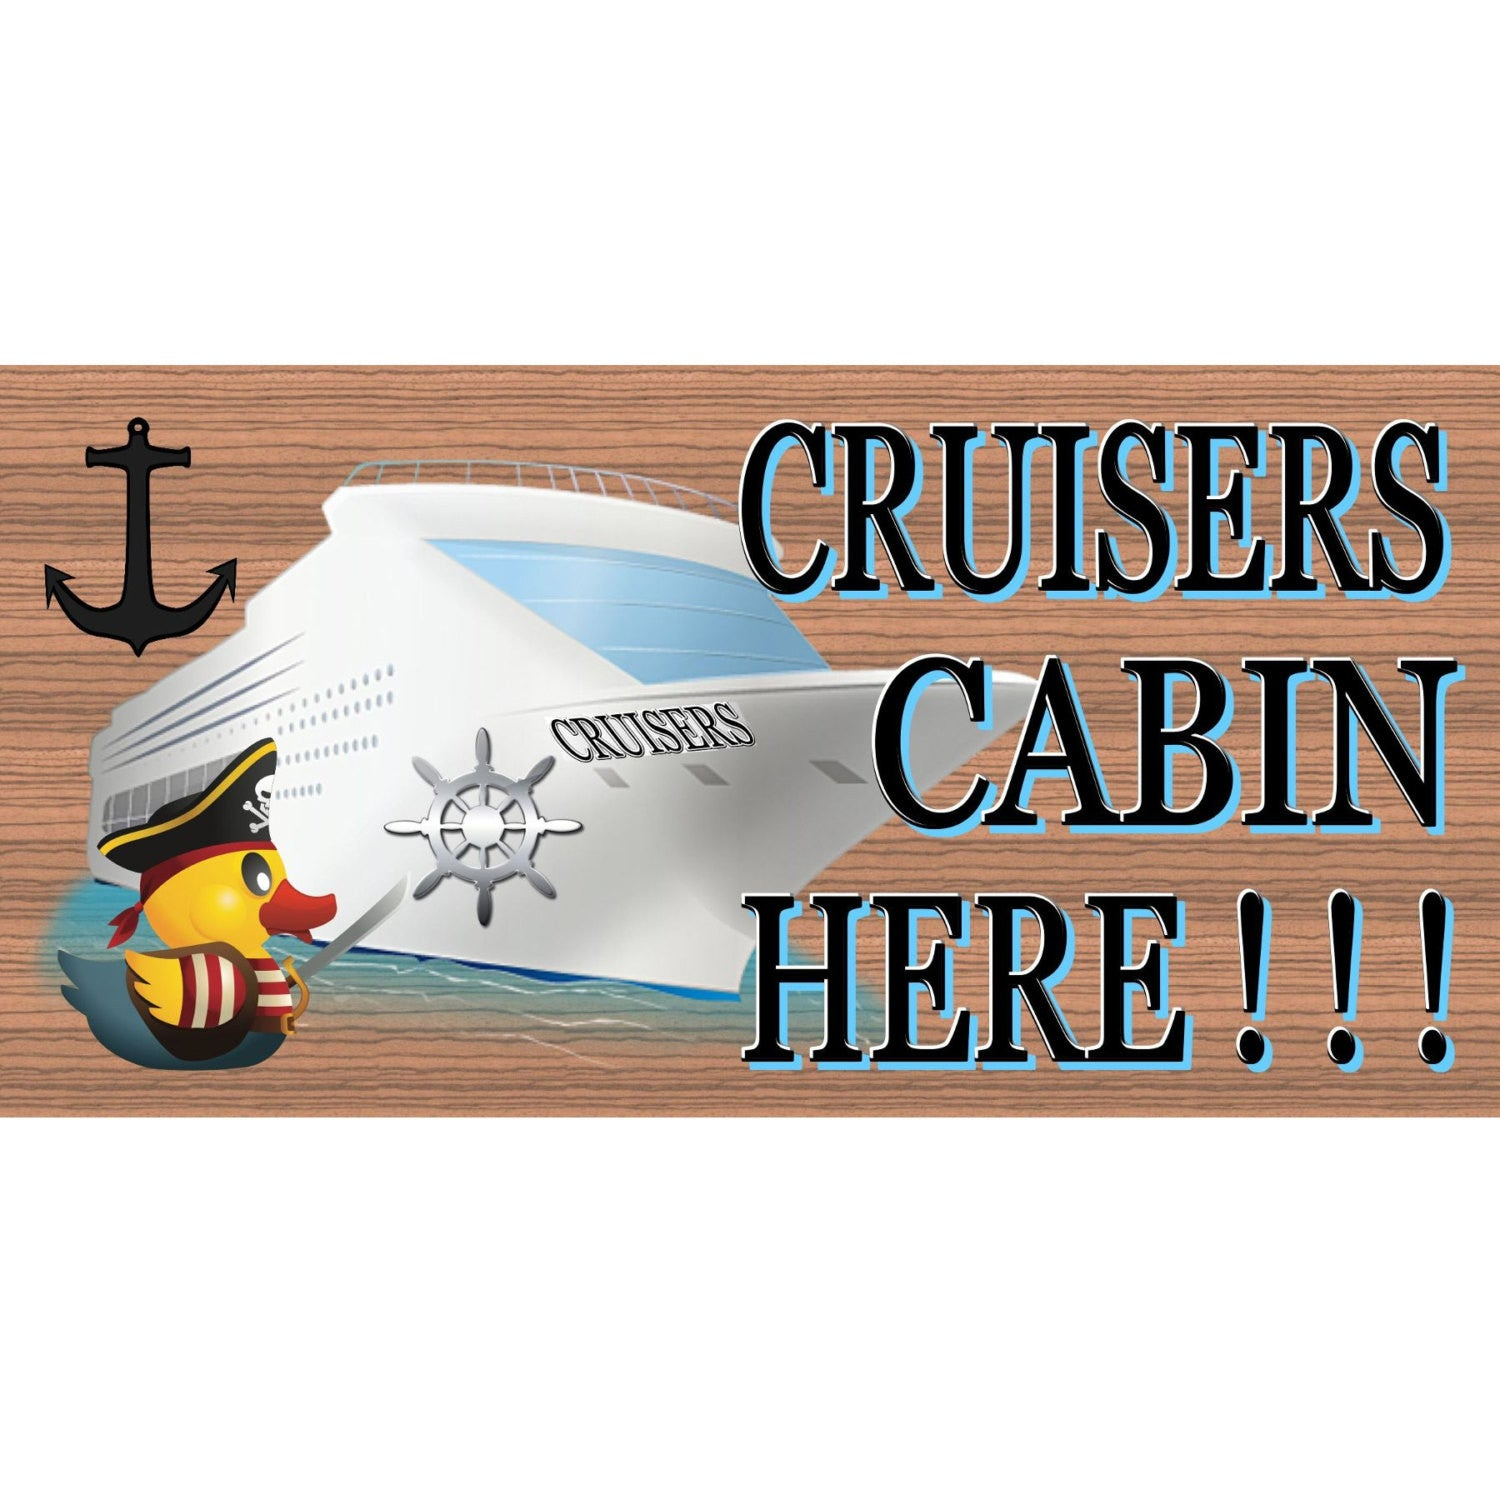 Cruise Ship Wood Signs - Cruisers Cabin Here - GS 1238 - Nautical Plaque